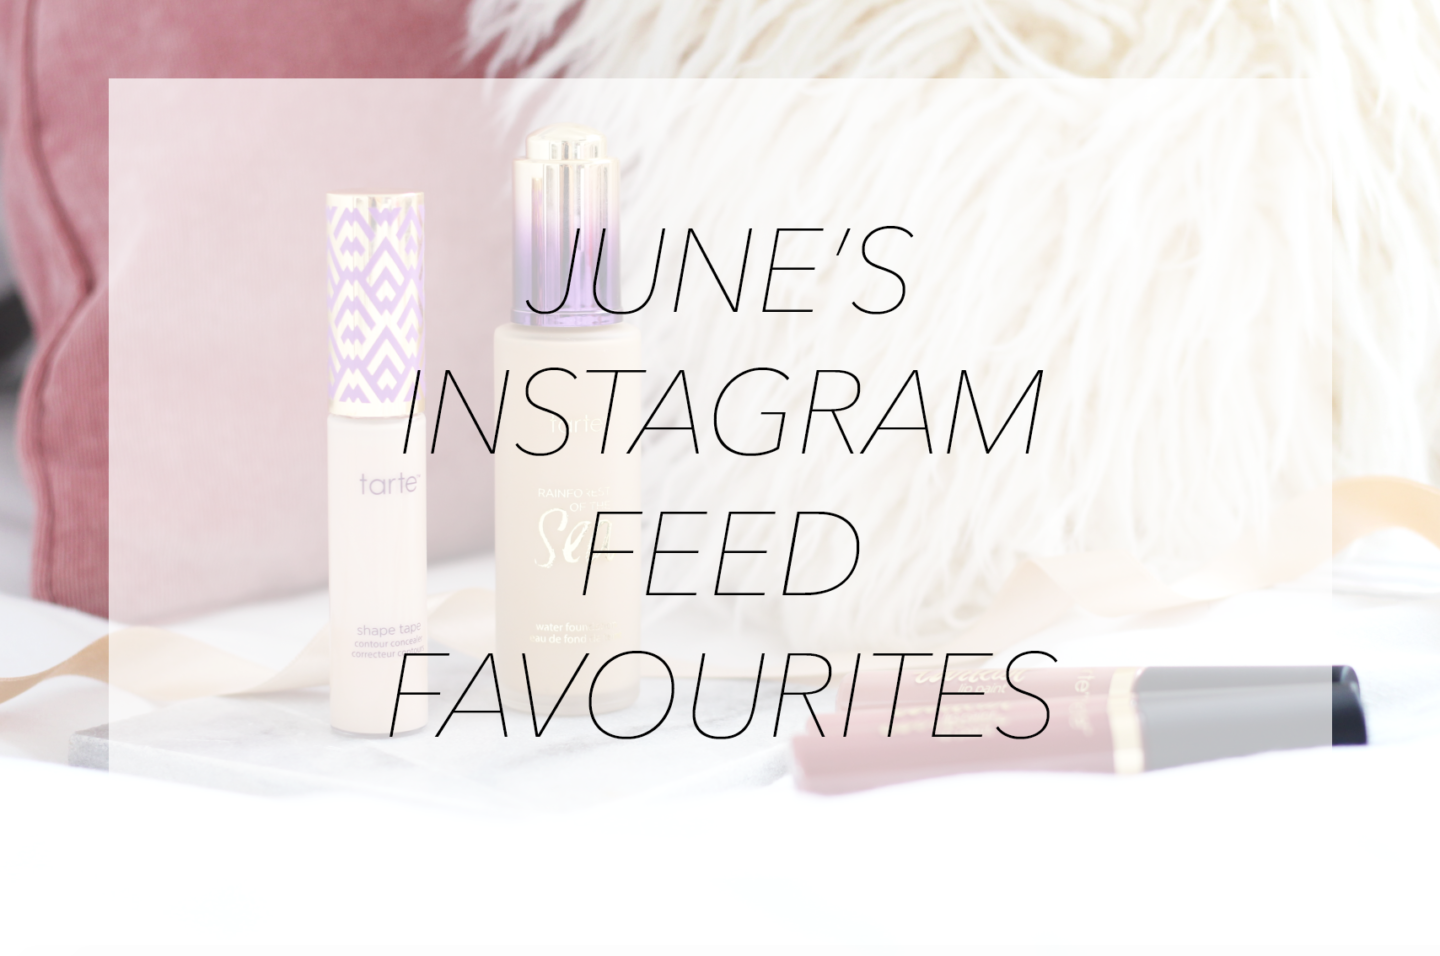 JUNE'S INSTAGRAM FEED FAVOURITES